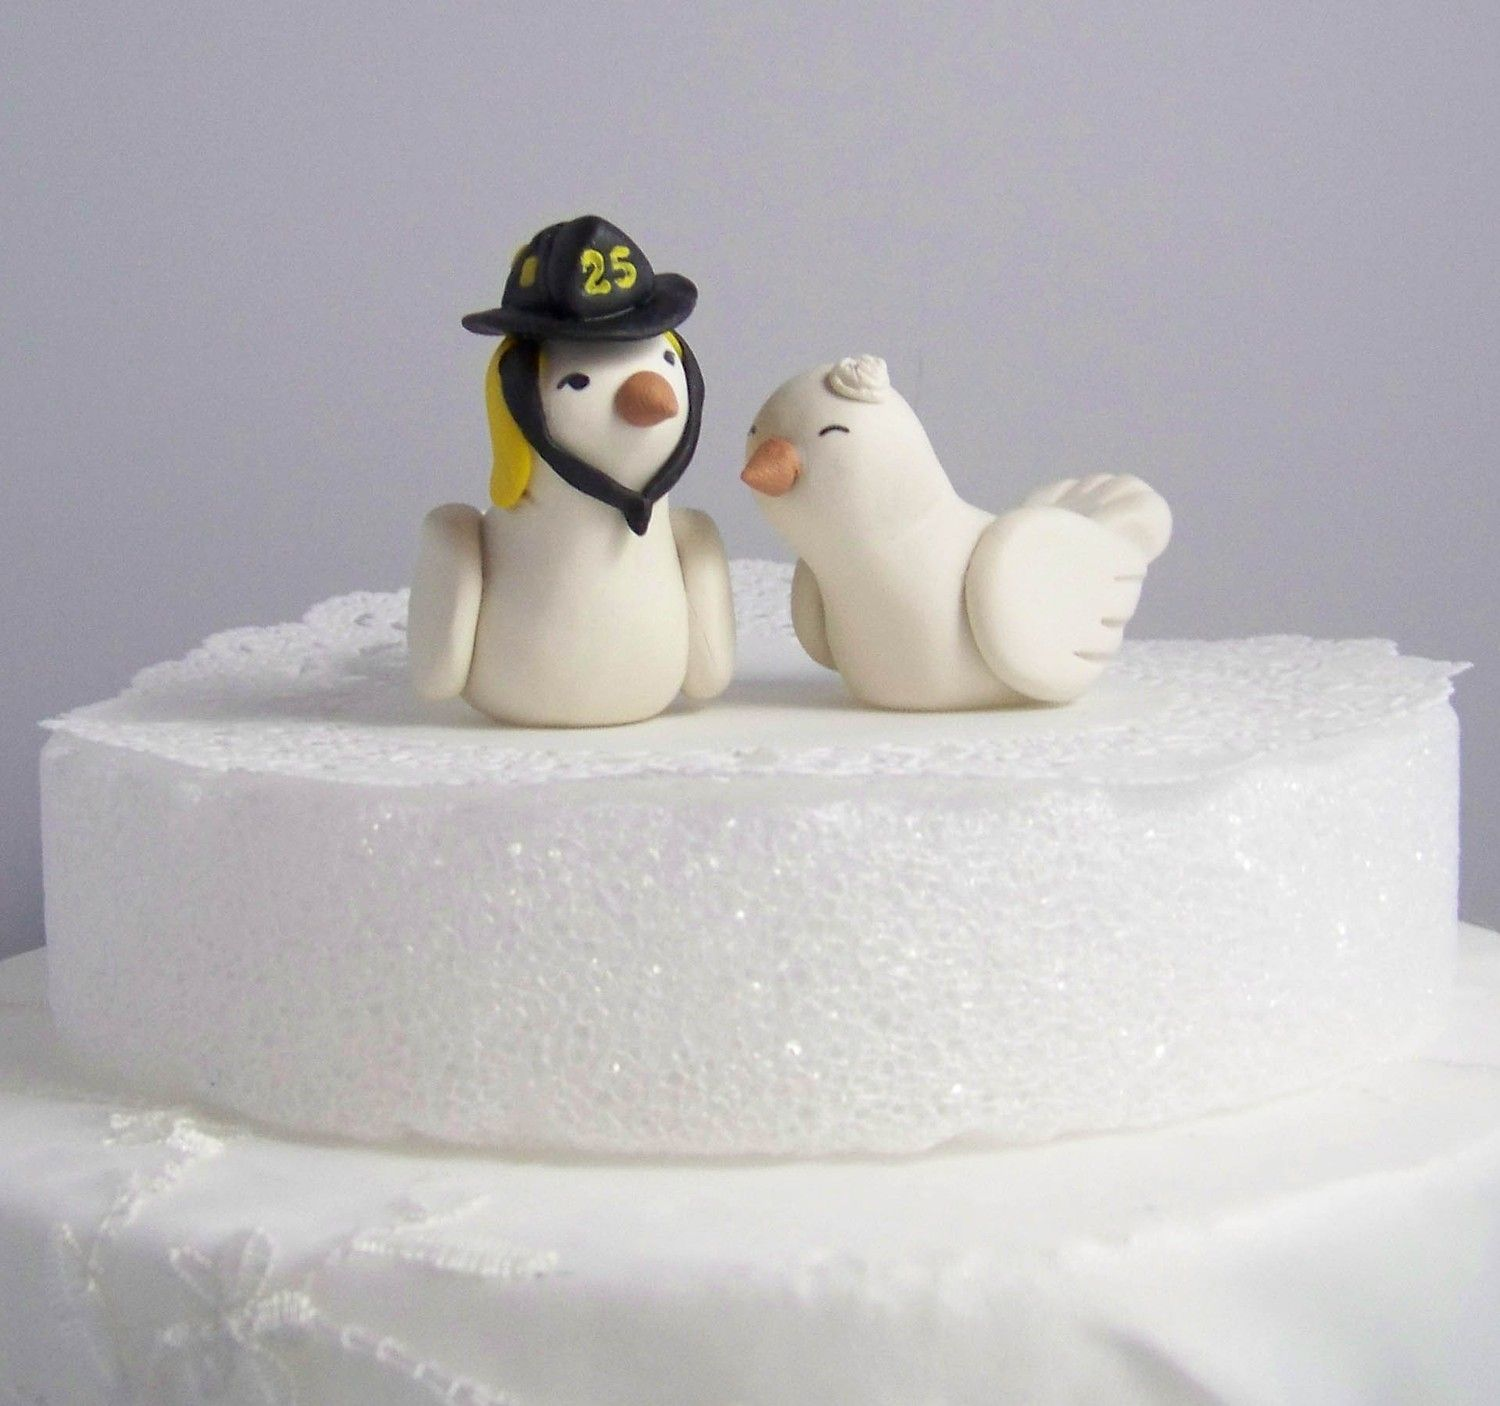 Firefighter Wedding Cake Topper Love Birds Cake Topper- Custom Small ...